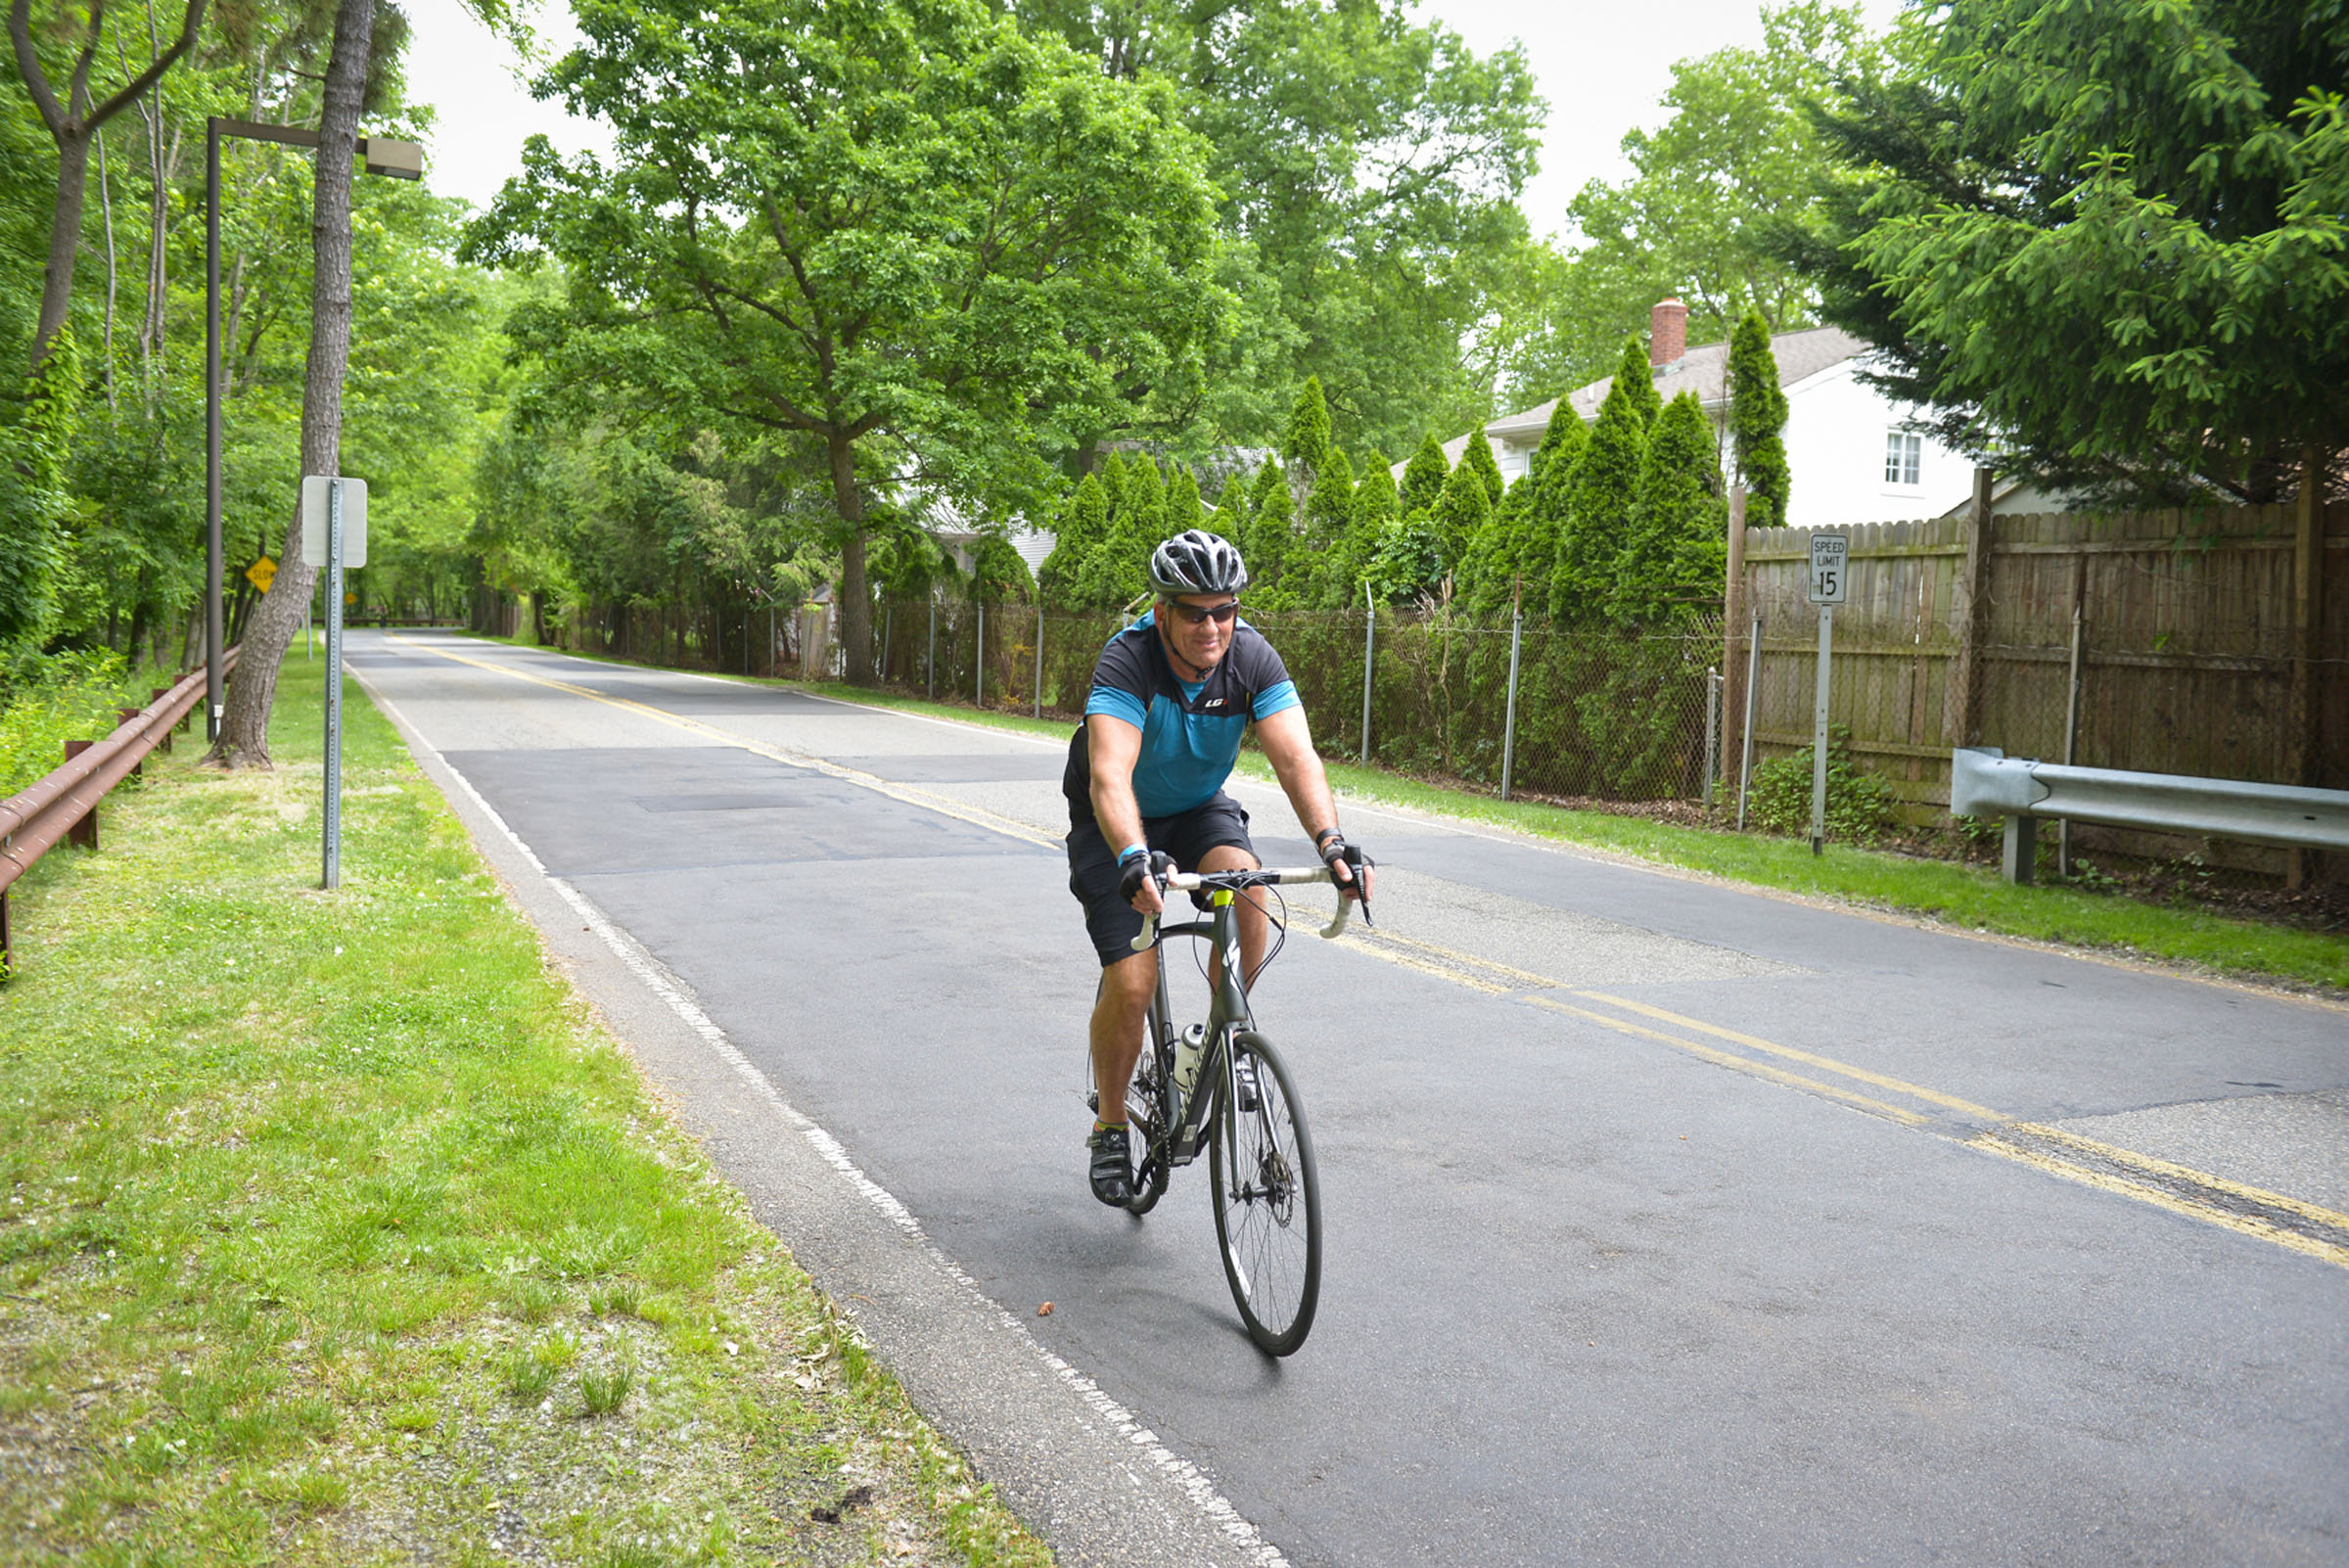 2017-06-04 GTD4A Charity Bike Ride - BCC - Paramus NJ-2394.jpg